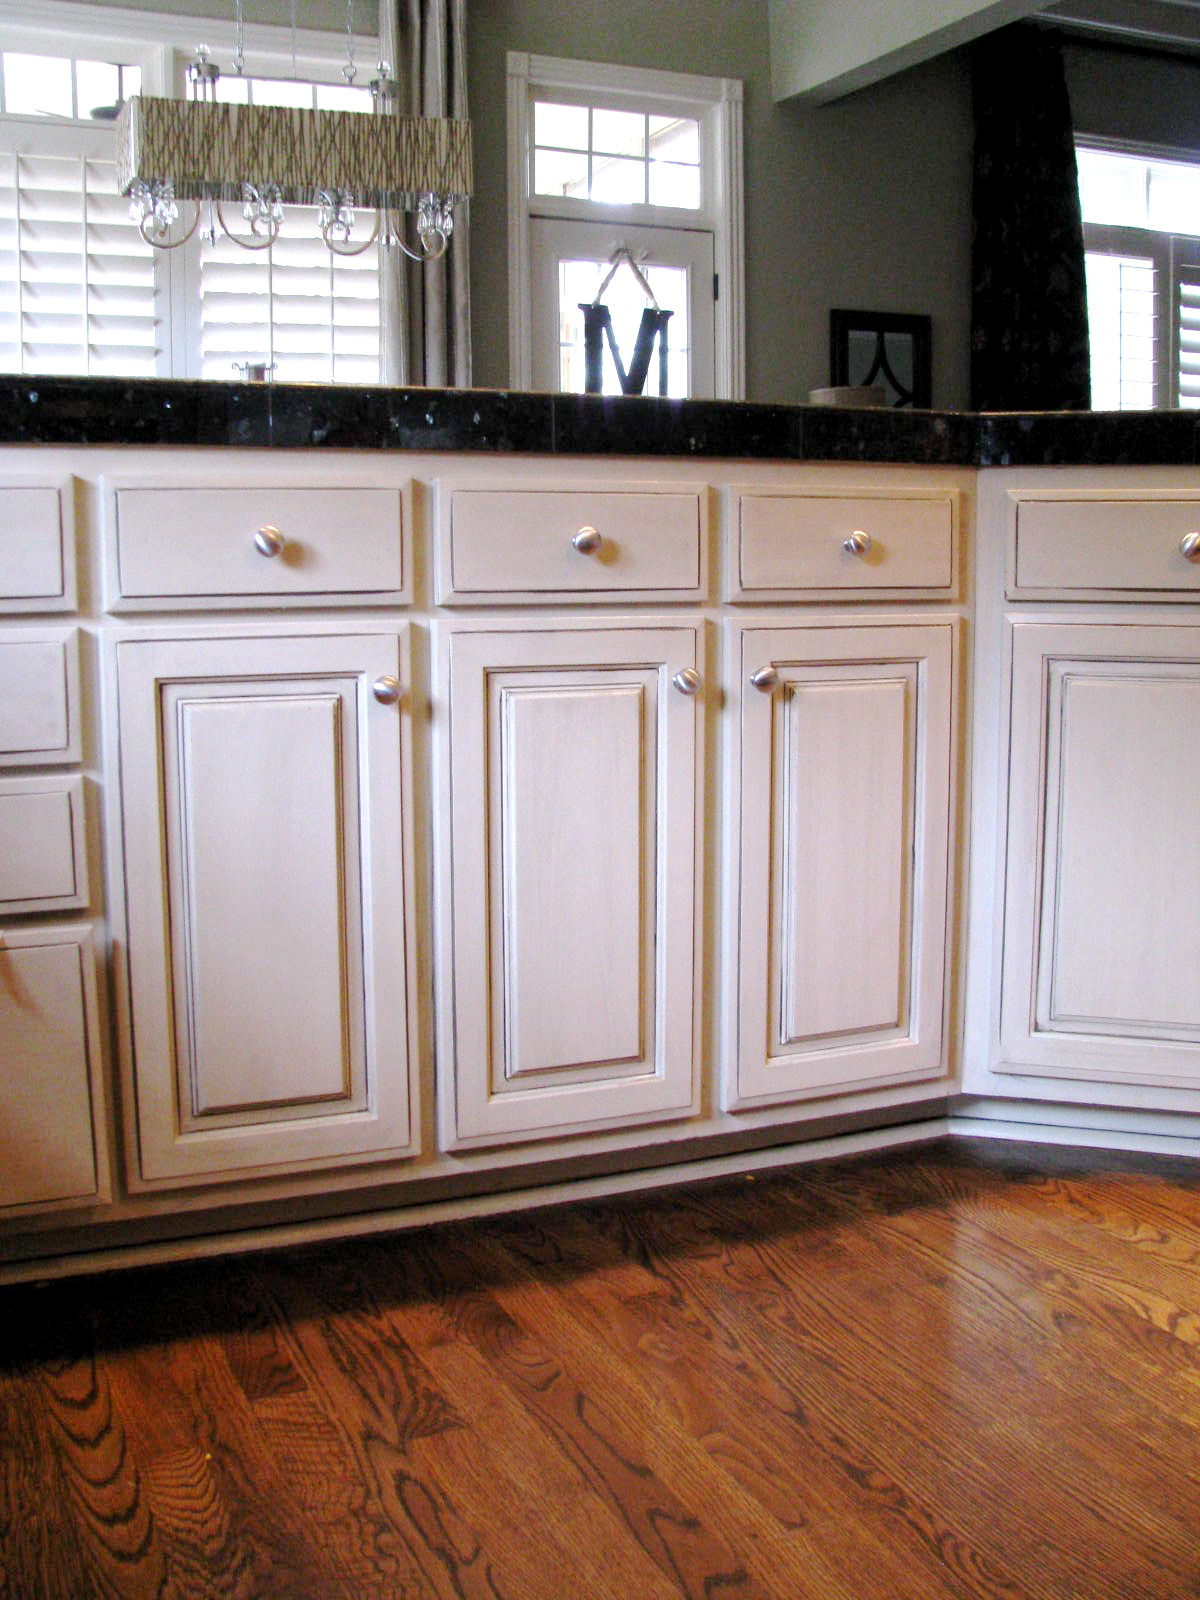 Cream With Chocolate Glaze Cabinets - Gray glazed cabinets